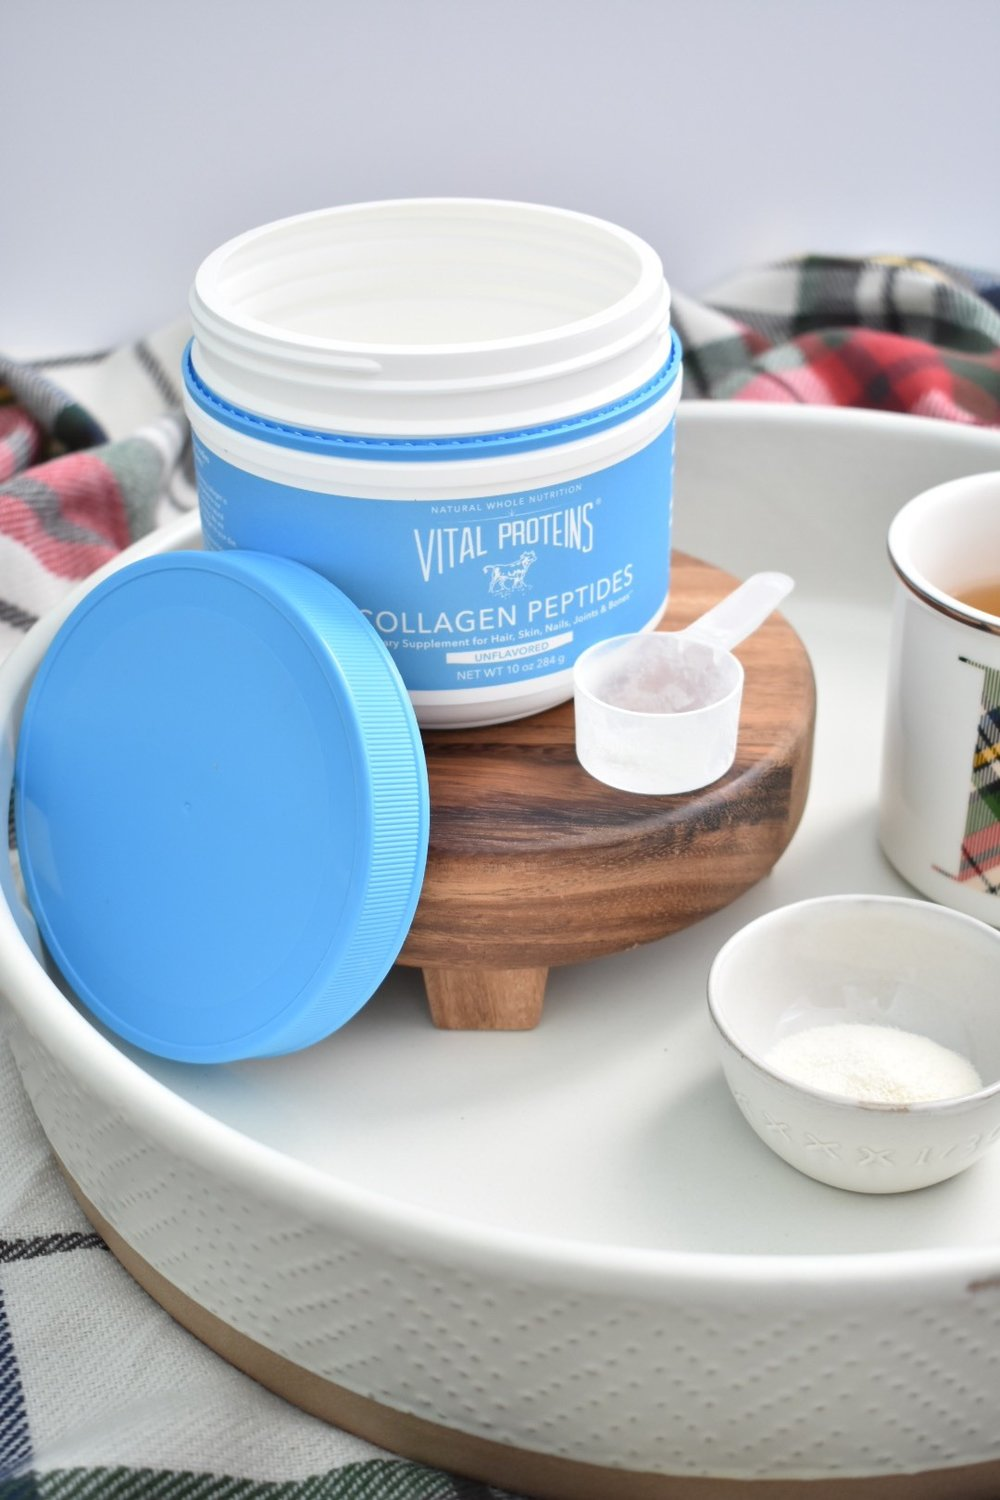 On The Paige Blog | Winter Skincare from the Inside Out | Skincare | Healthy Skin